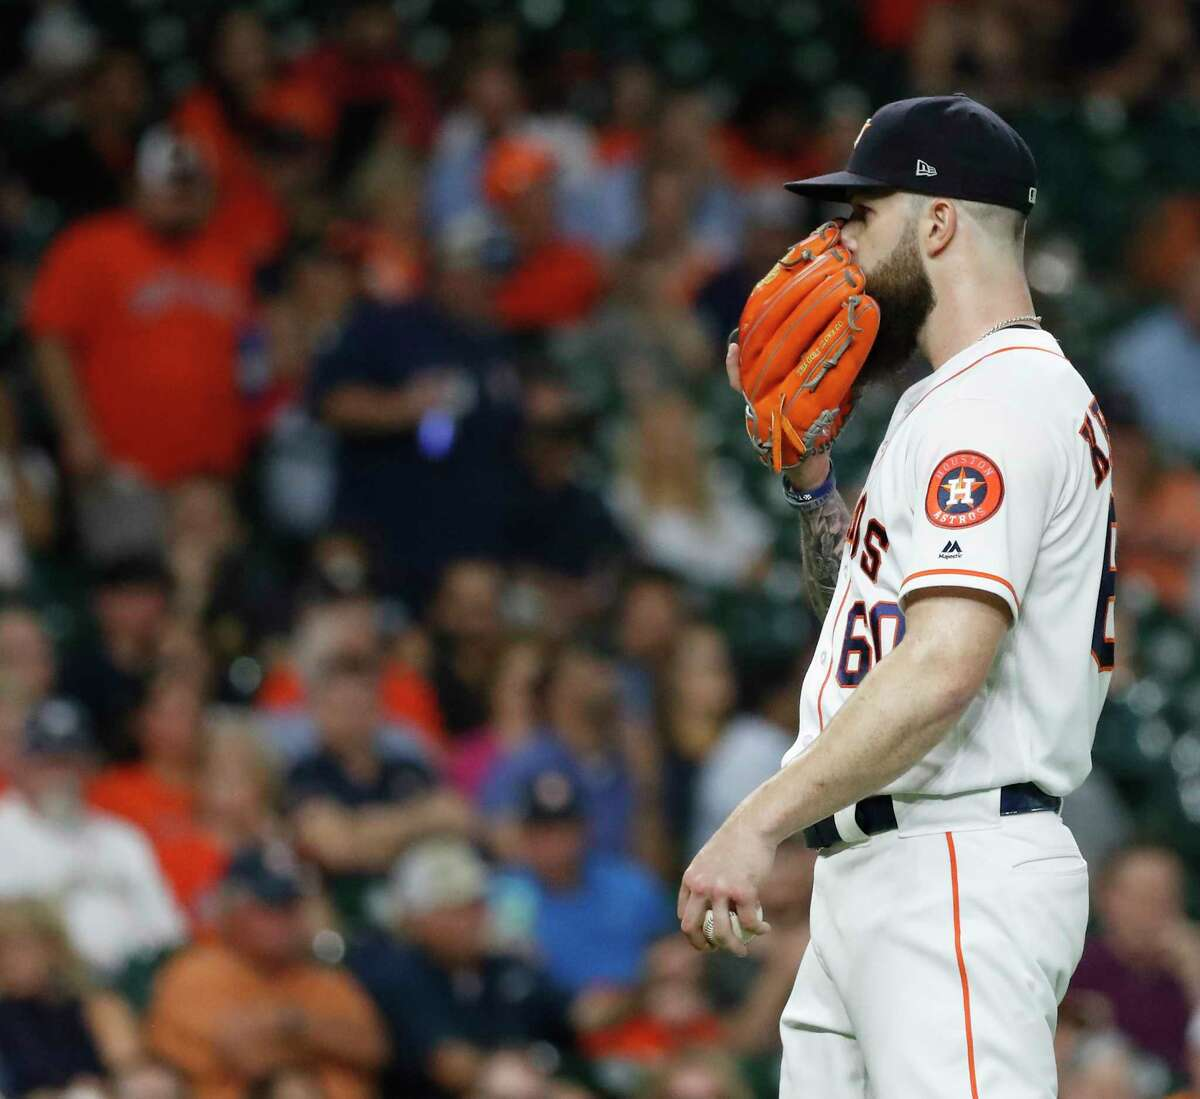 Houston Astros starting pitcher Dallas Keuchel (60) covers his face with his glove during the first inning of an MLB baseball game at Minute Maid Park, Wednesday, September 19, 2018, in Houston.